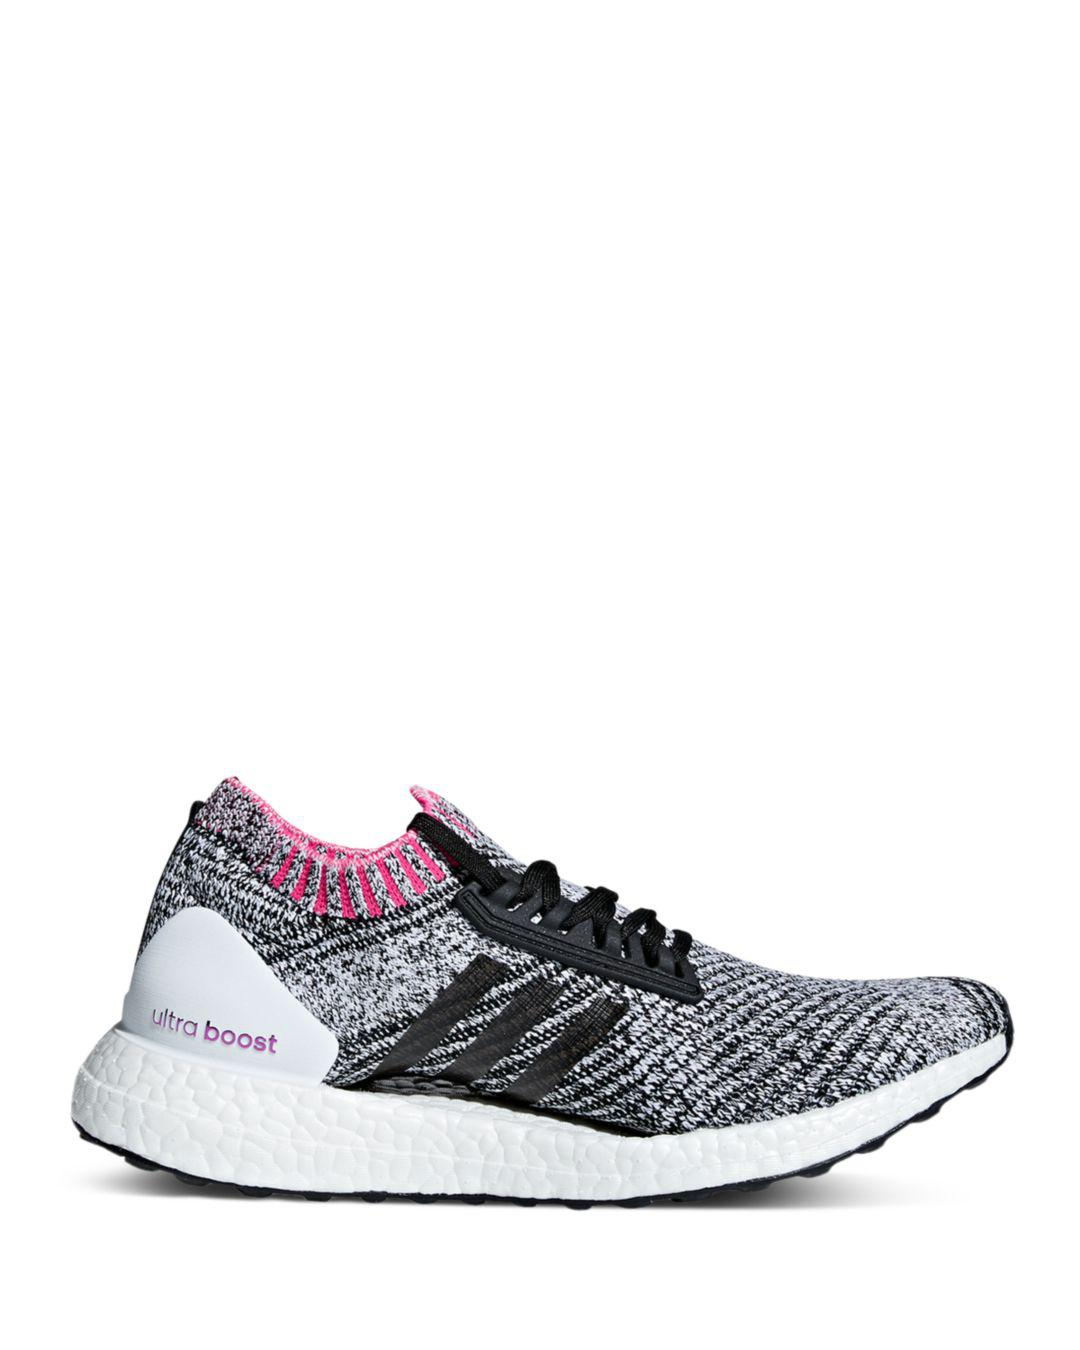 d79dcf1ba381 Lyst - adidas Women s Ultraboost X Primeknit Lace Up Sneakers - Save 51%